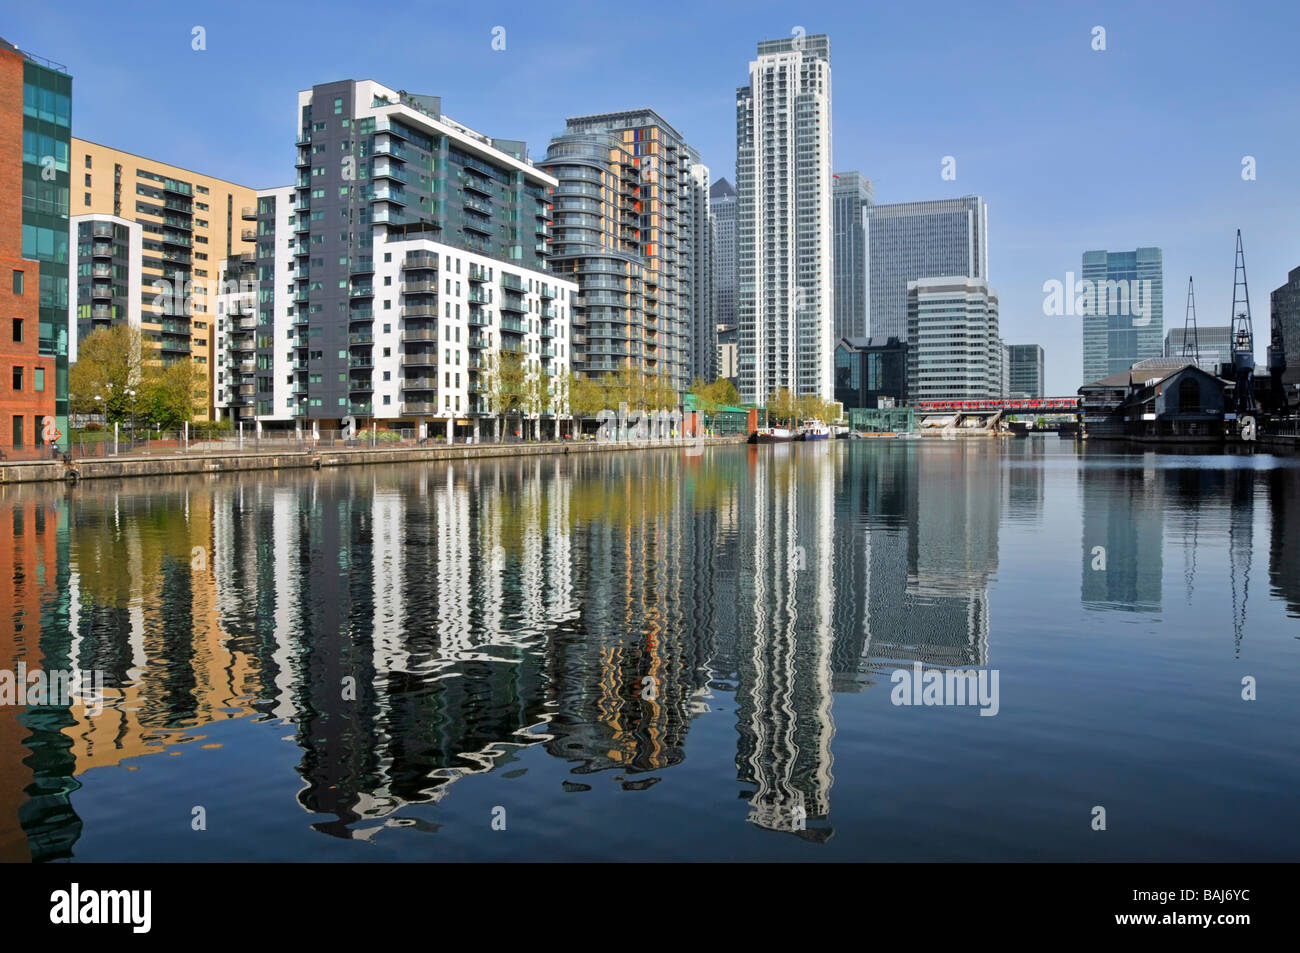 Waterside high rise apartment developments beside Millwall Docks close to Canary Wharf with Citi bank tower block - Stock Image